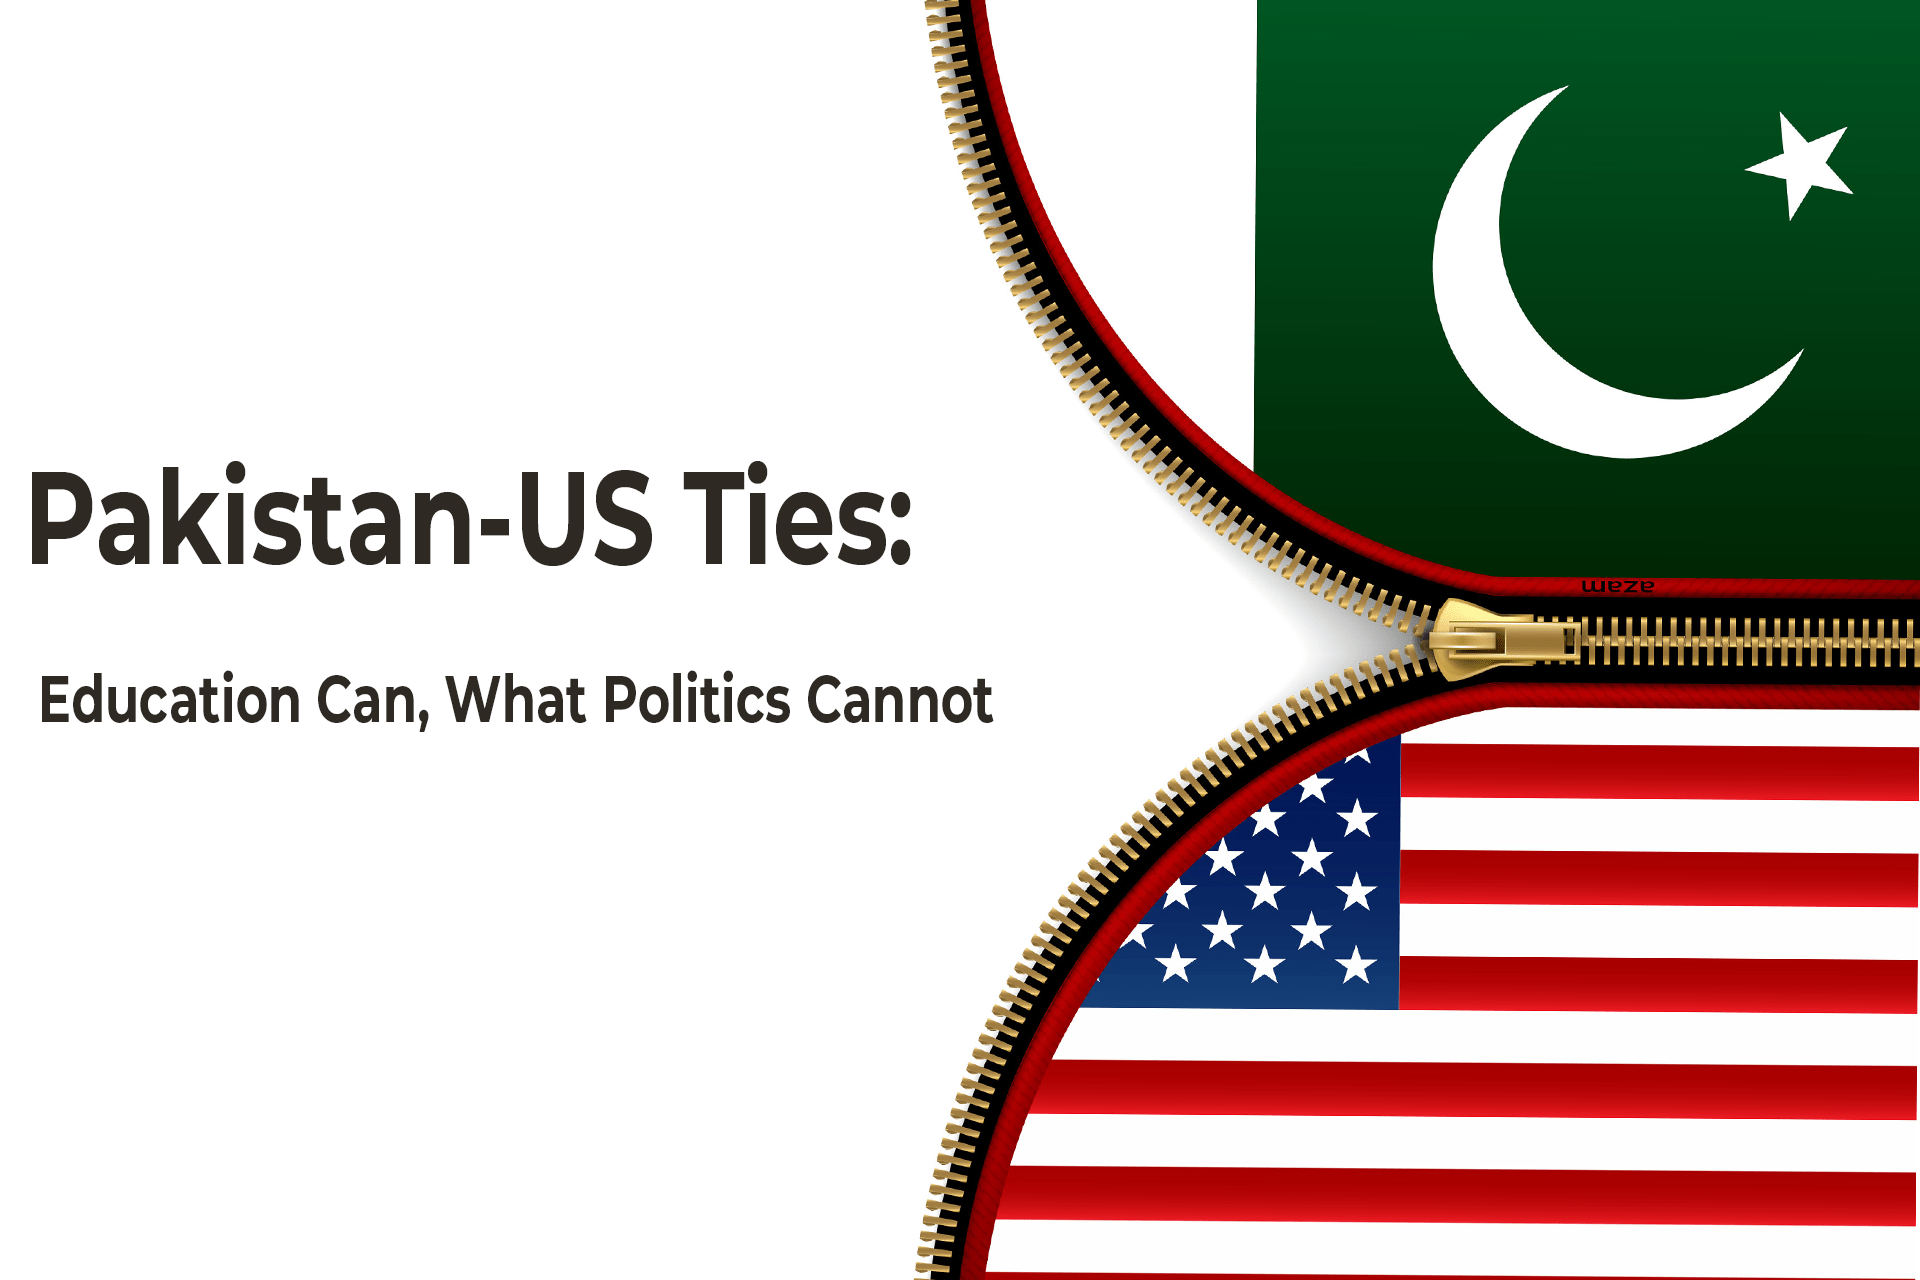 Pakistan-US Ties: Education Can, What Politics Cannot